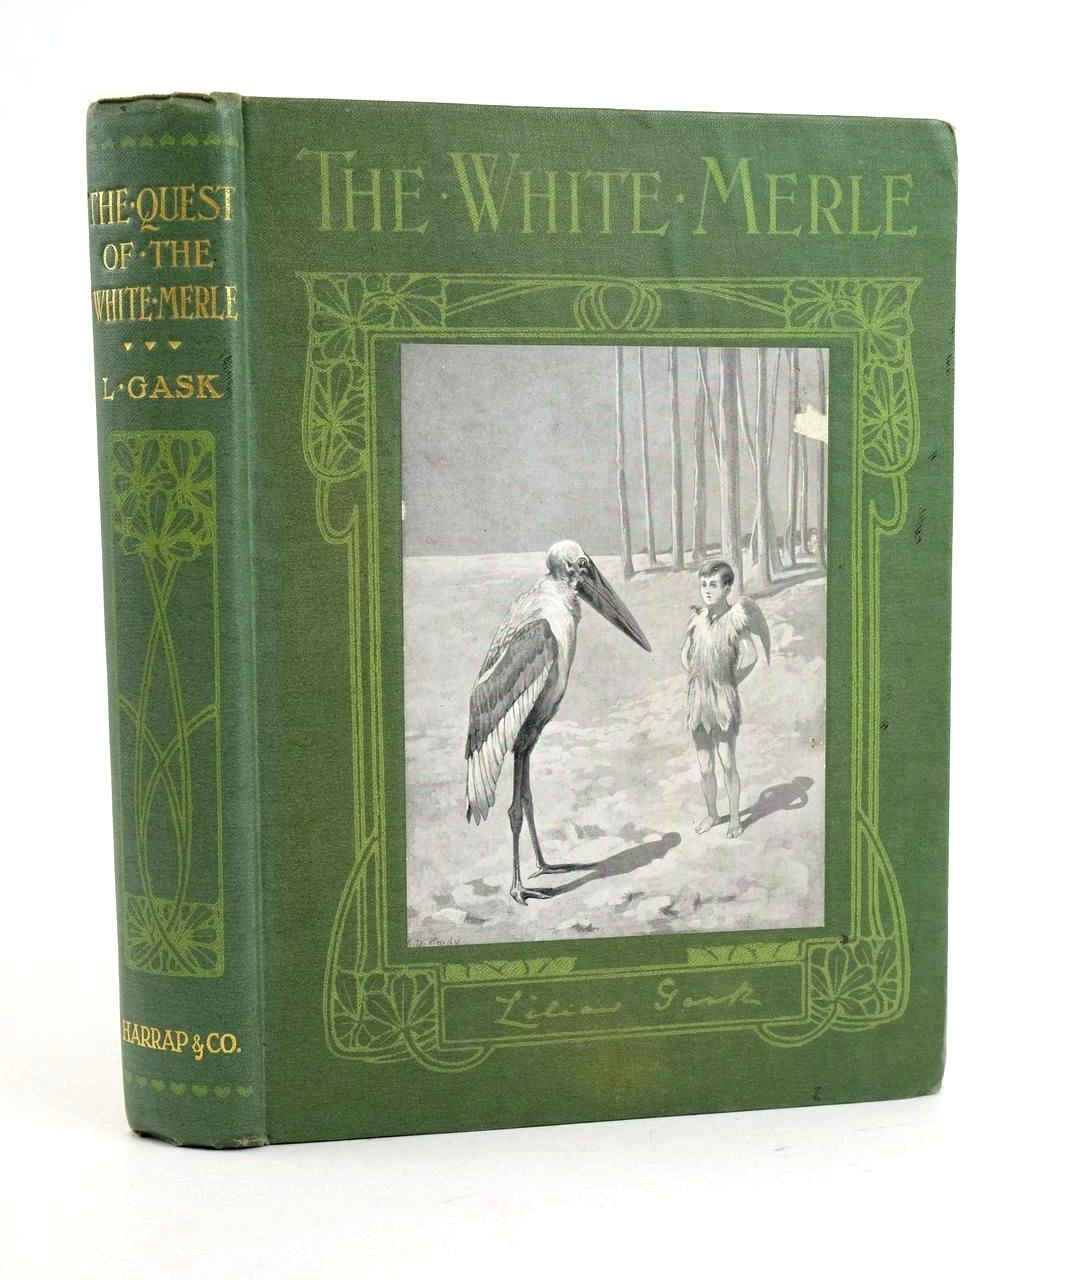 Photo of THE QUEST OF THE WHITE MERLE written by Gask, Lilian illustrated by Hardy, Dorothy published by George G. Harrap & Co. (STOCK CODE: 1319064)  for sale by Stella & Rose's Books